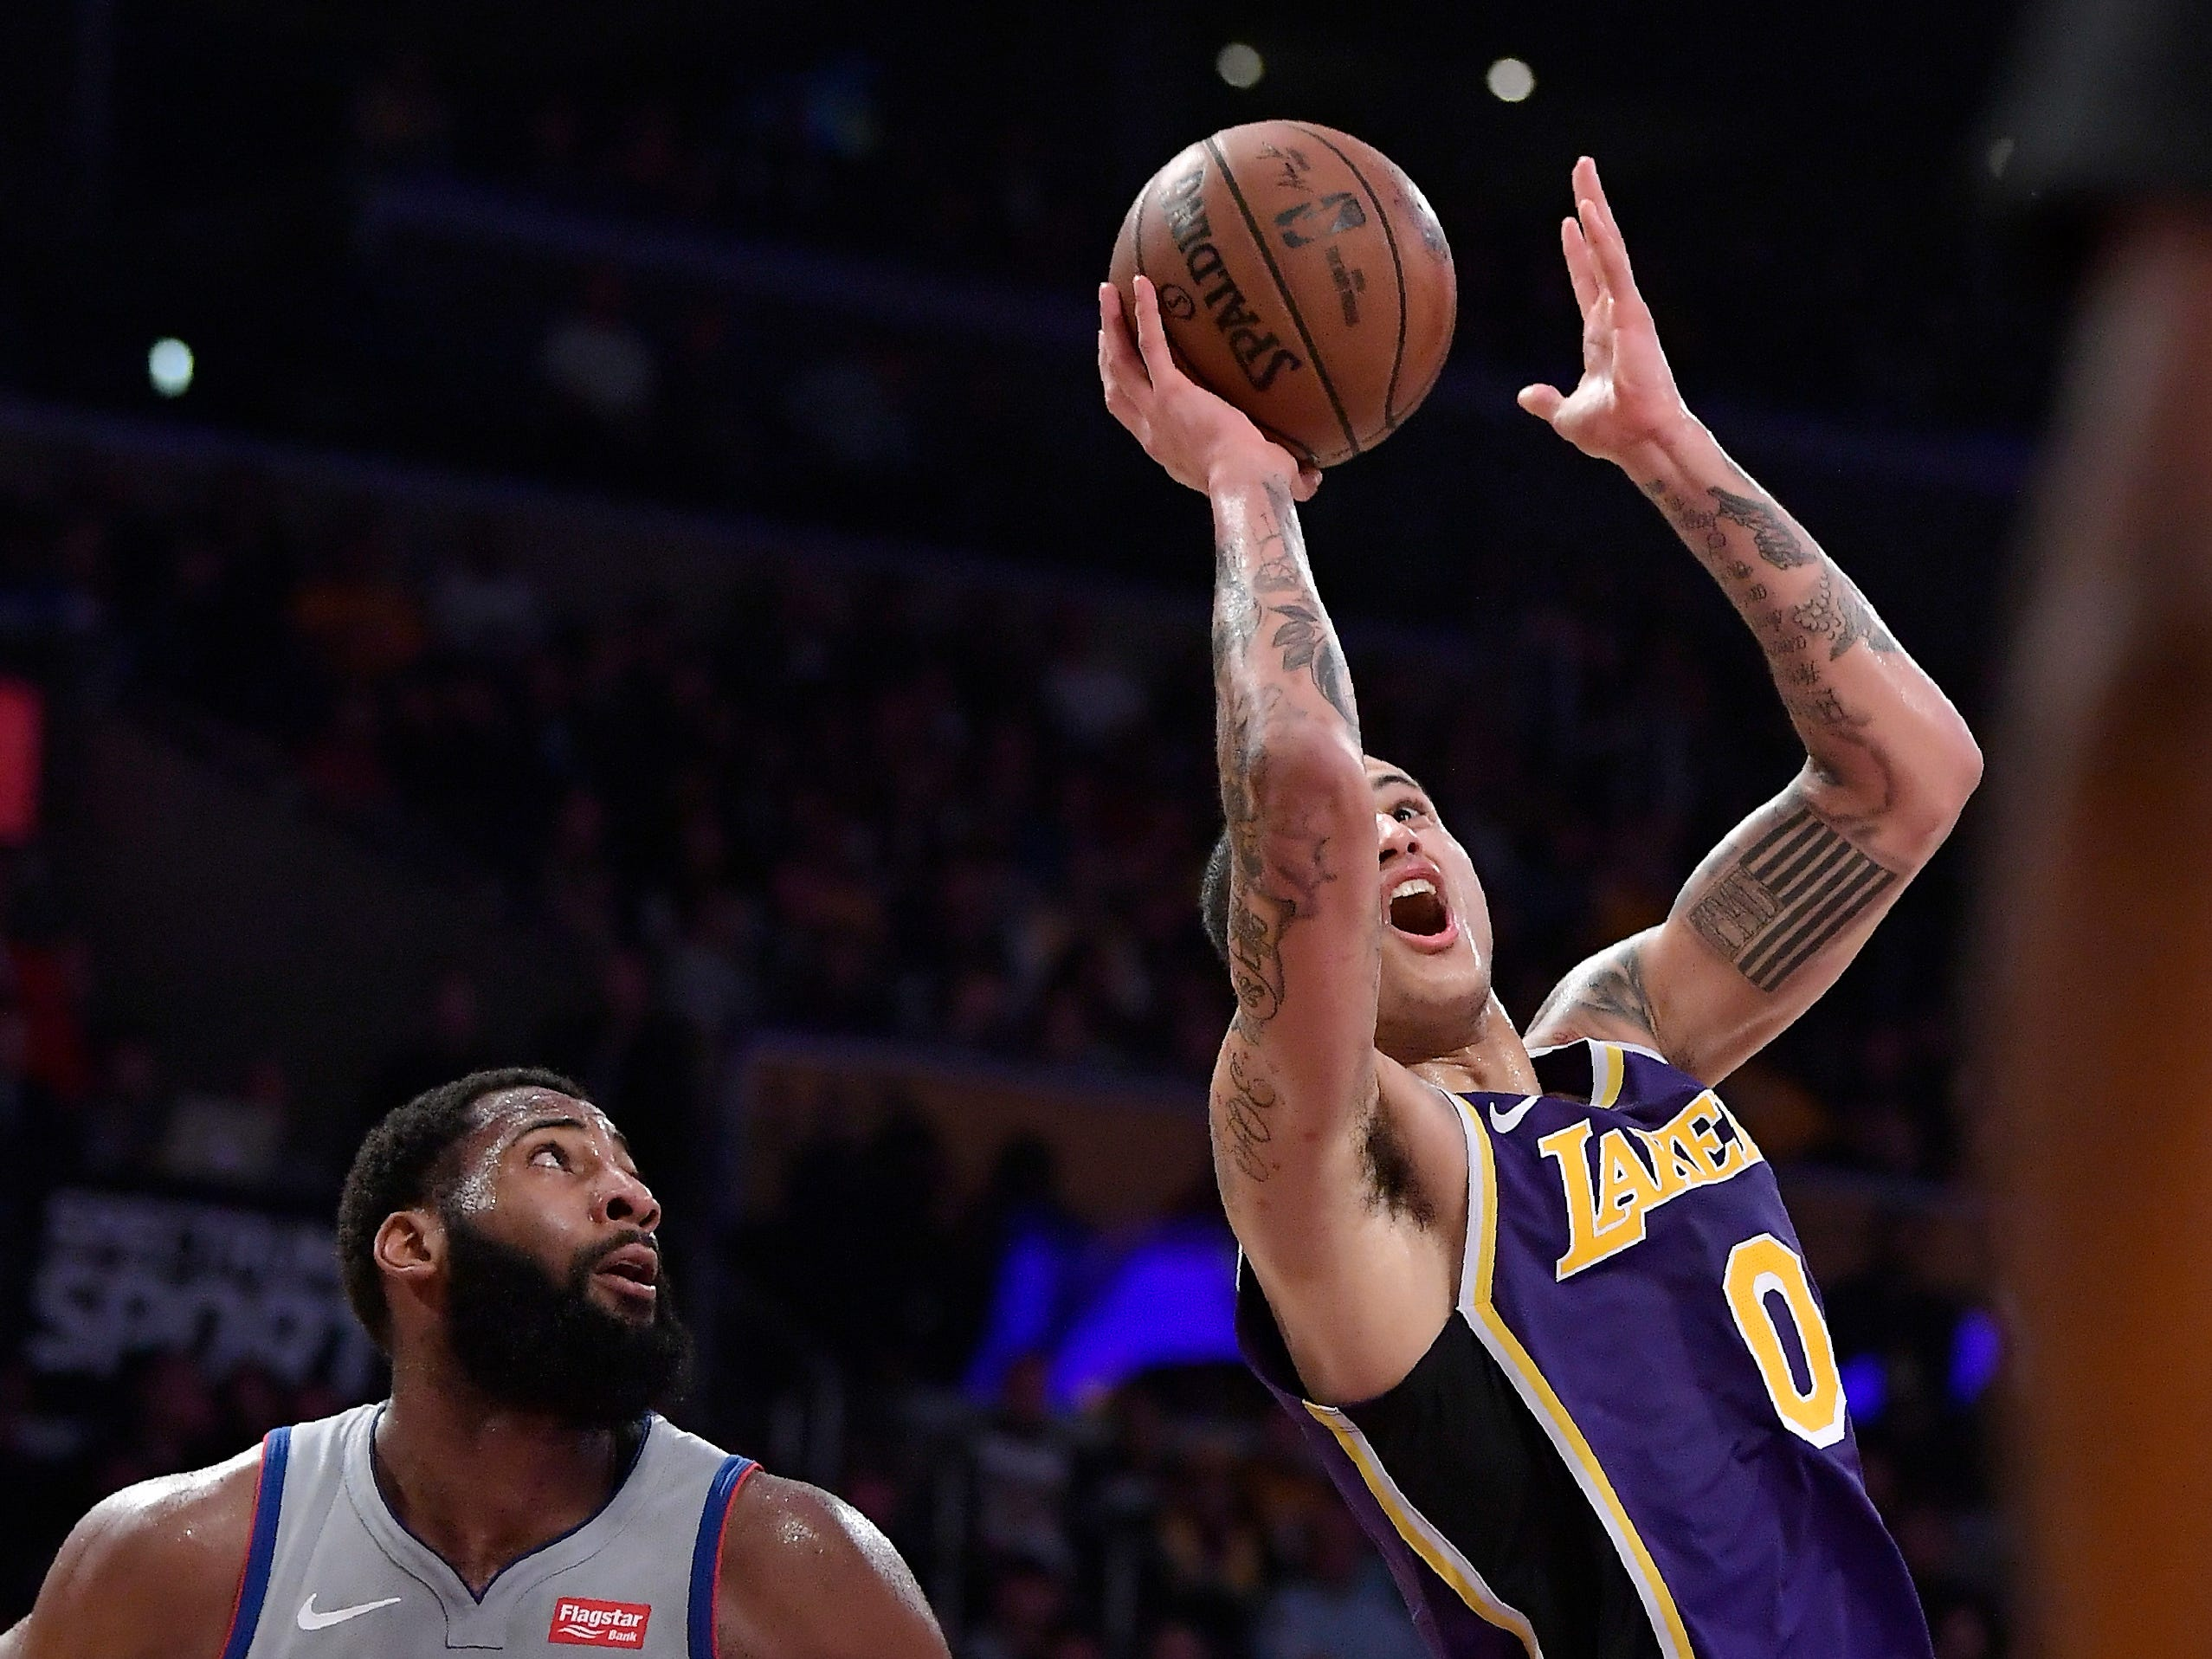 Los Angeles Lakers forward Kyle Kuzma, right, shoots as Detroit Pistons center Andre Drummond defends during the second half.